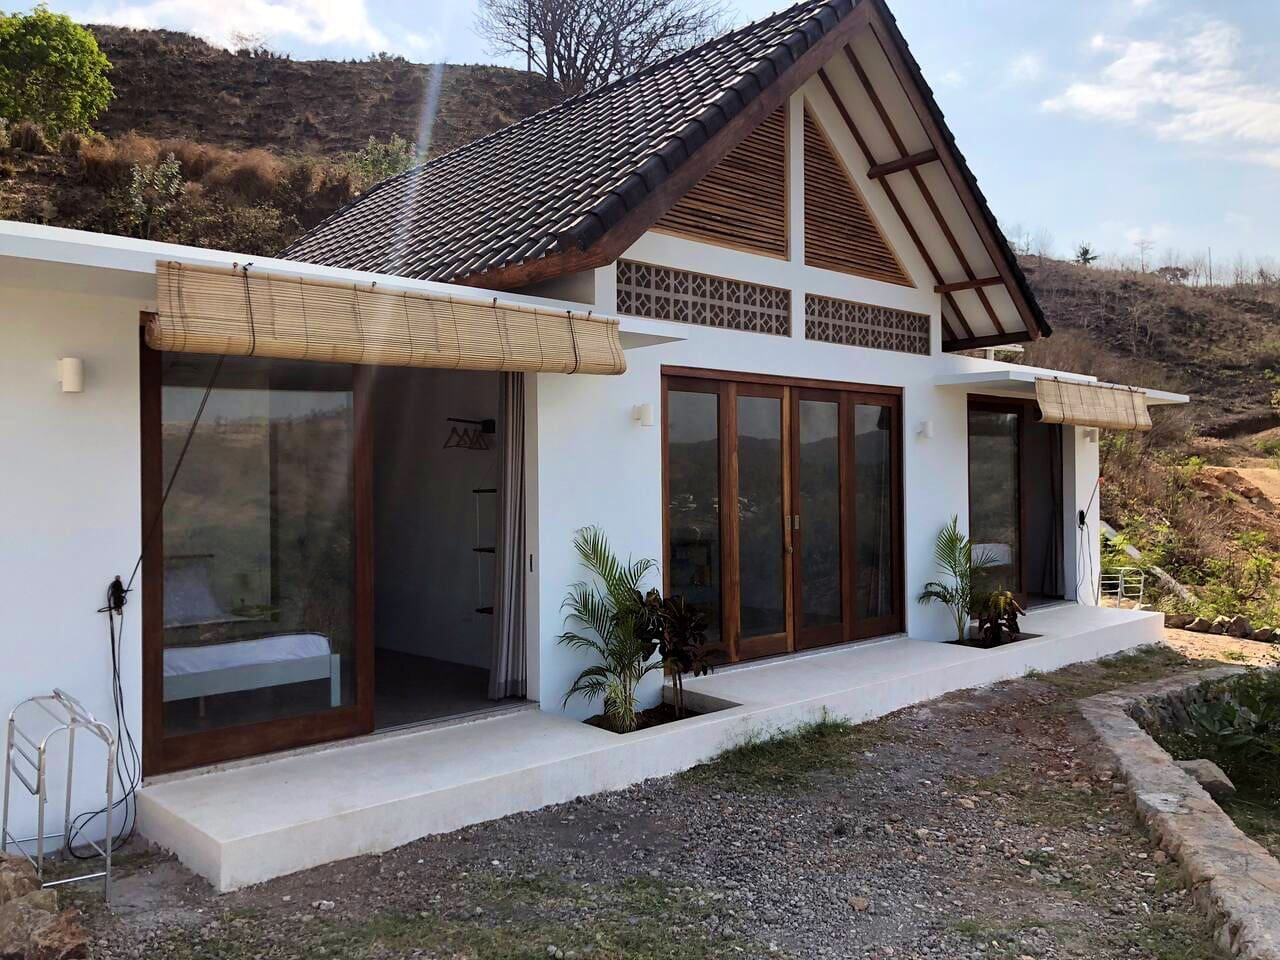 Bungalow, two private en-suite bedrooms with shared kitchen and lounge. Bedrooms and living space have separate private entrances